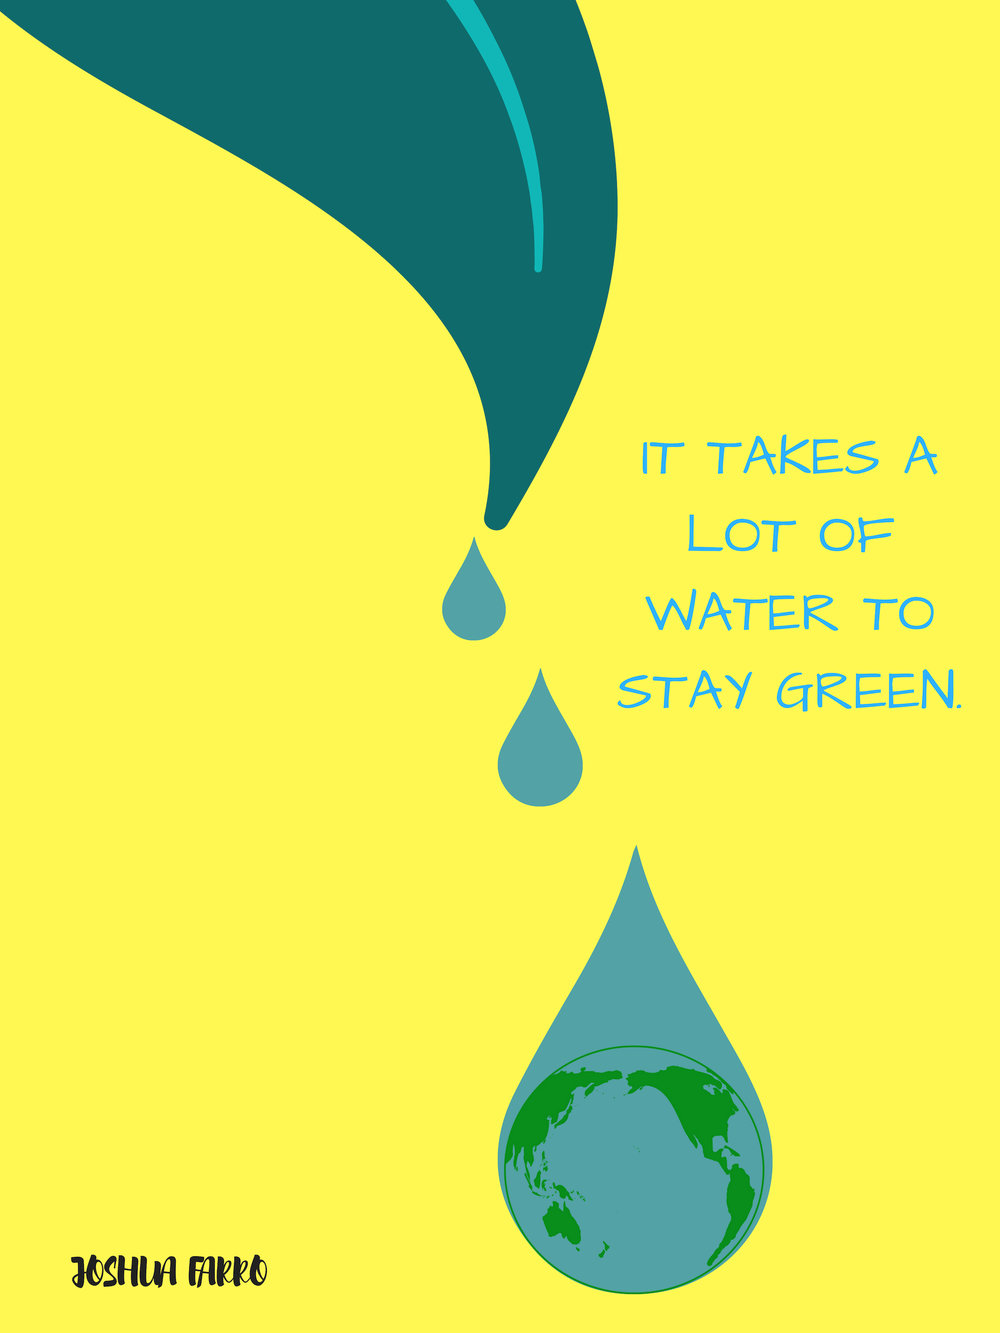 IT TAKES A LOT OF WATER TO STAY GREEN.jpg